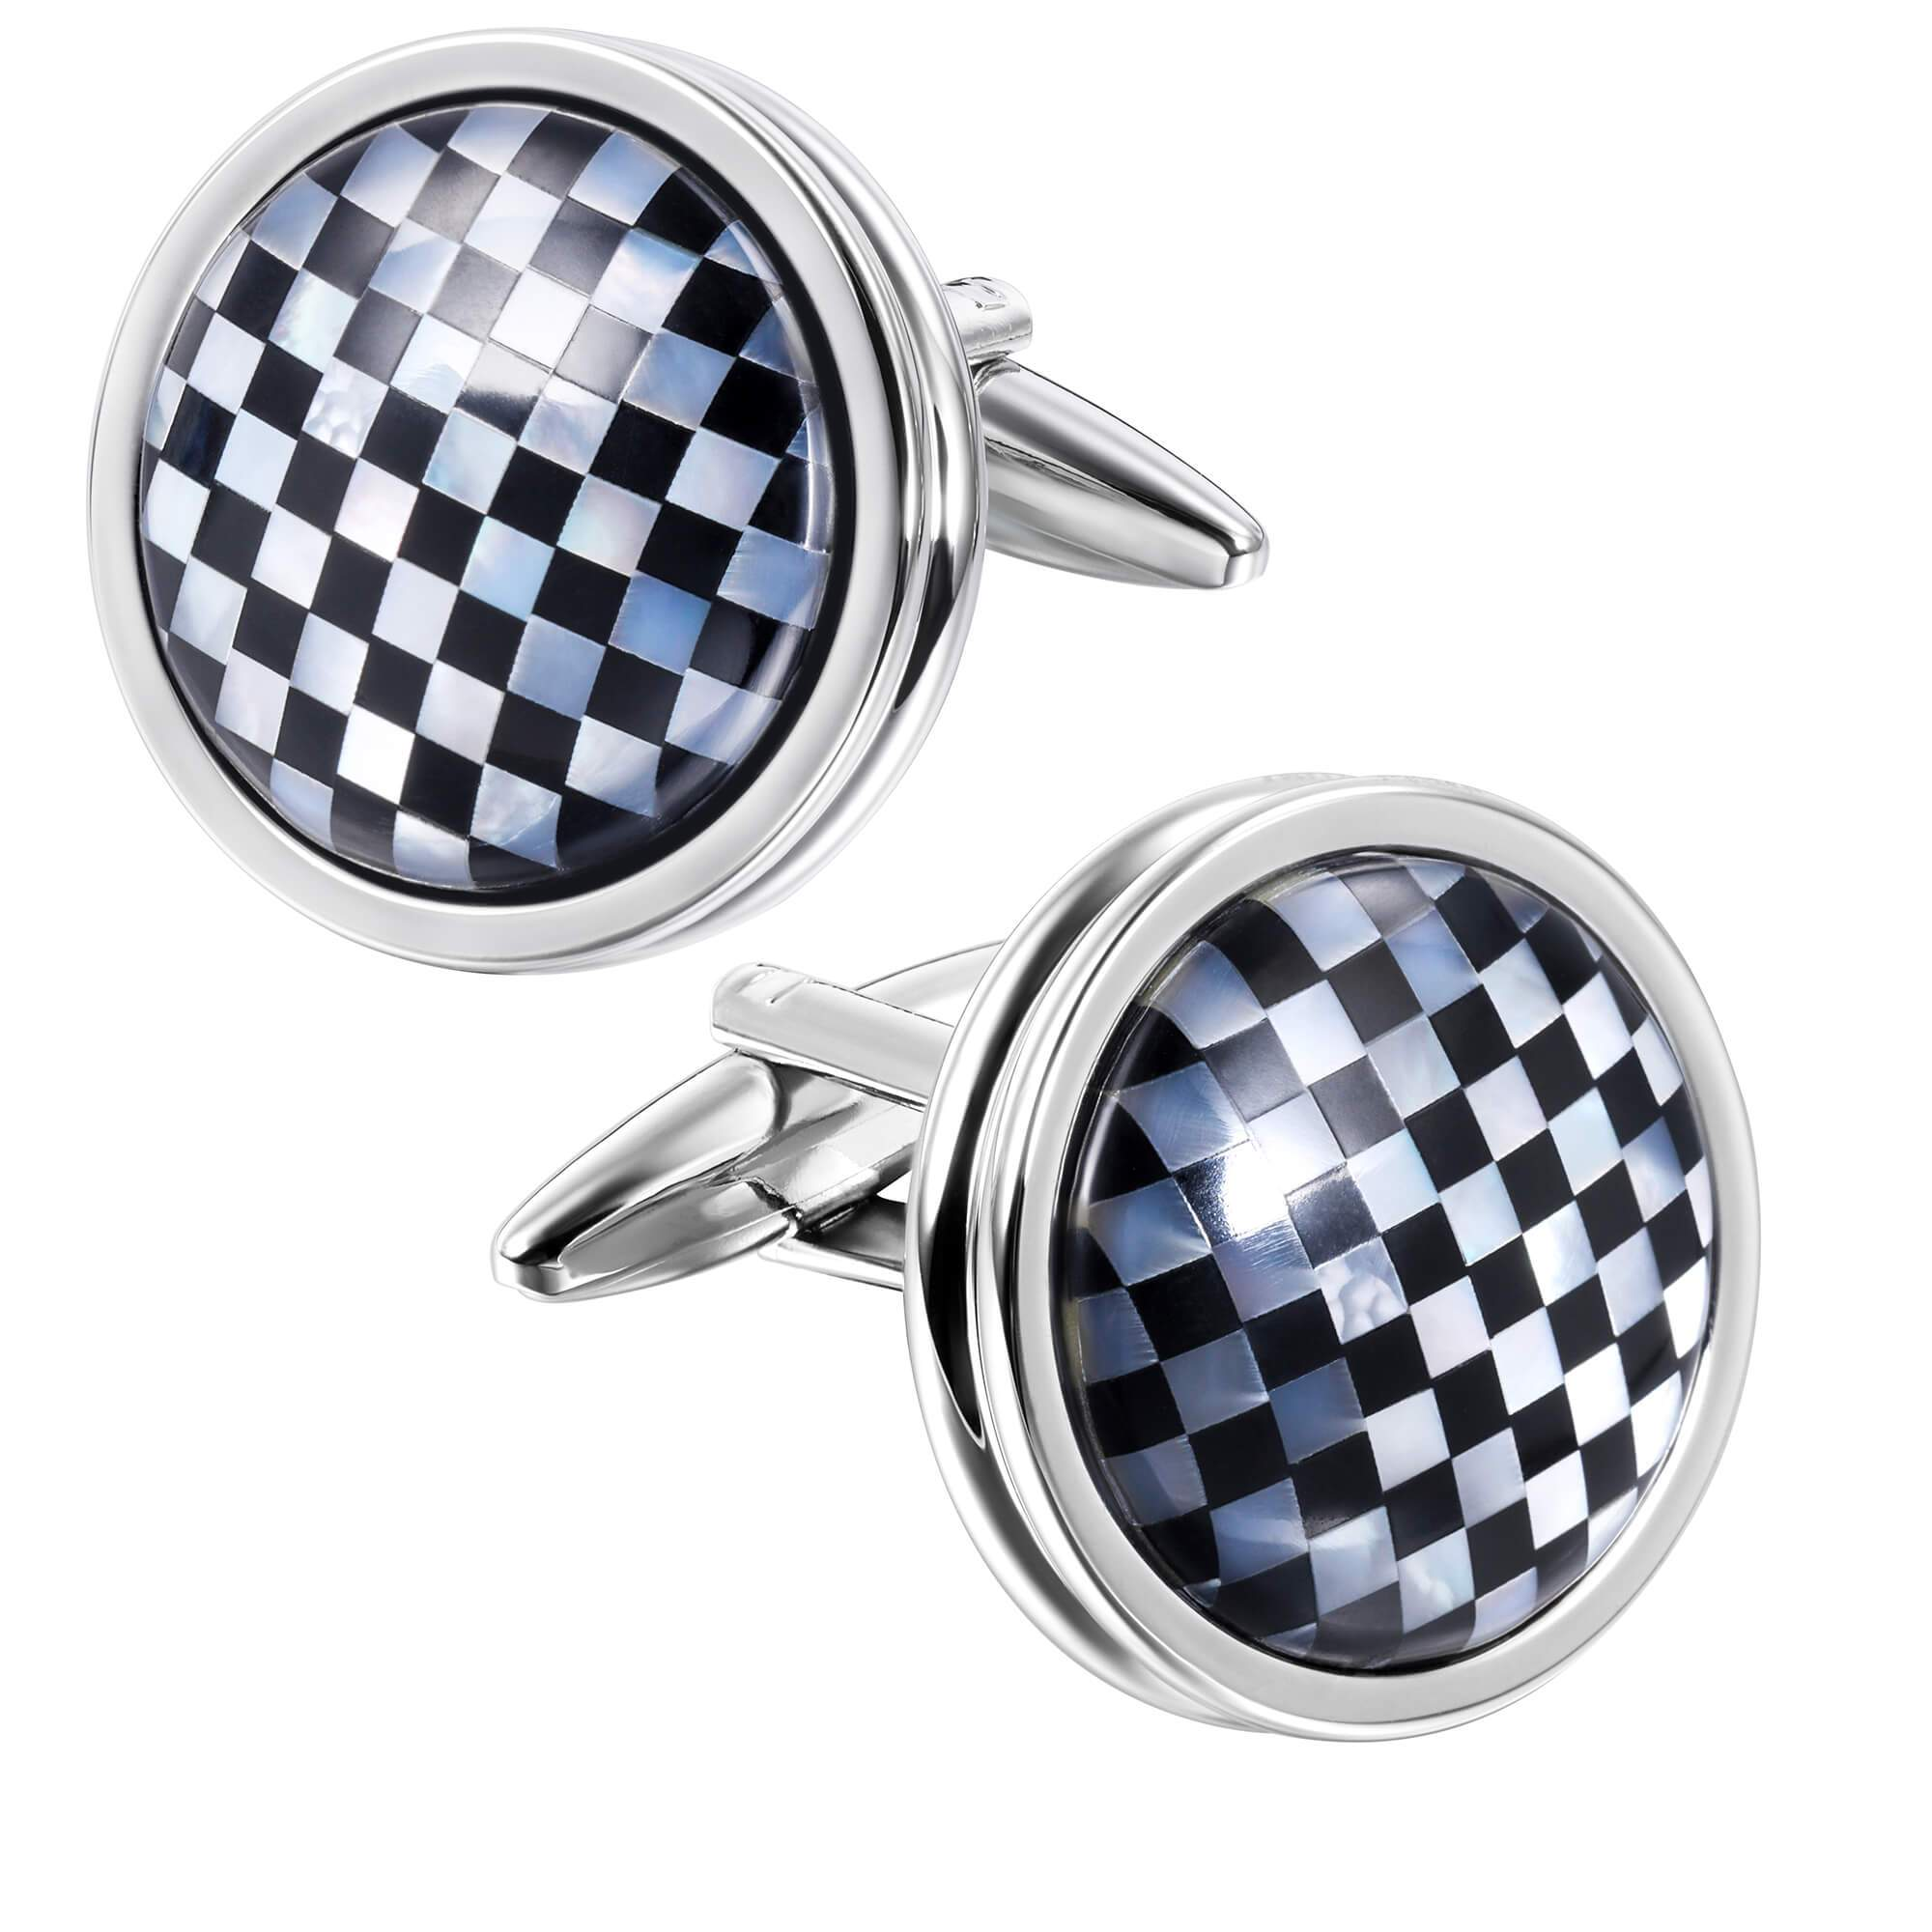 Mother of Pearl and Black Checkerboard in Round Silver Cufflinks Classic & Modern Cufflinks Clinks Australia Default